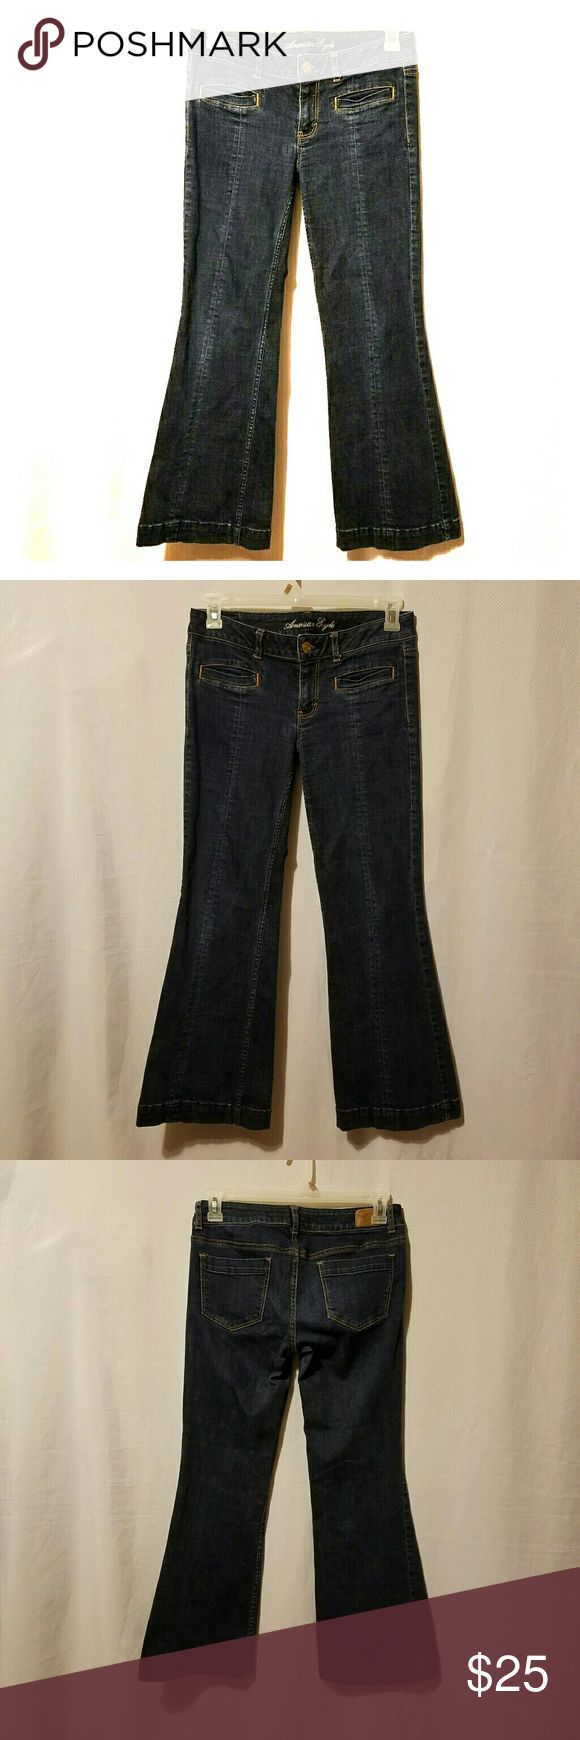 "American Eagle Trouser Jeans.( short) American eagle trouser jeans.Size 8 Inseam 29"" and rise 7.5.darkwash.used.Good condition.Make me an offer. American Eagle Outfitters Jeans Flare & Wide Leg"